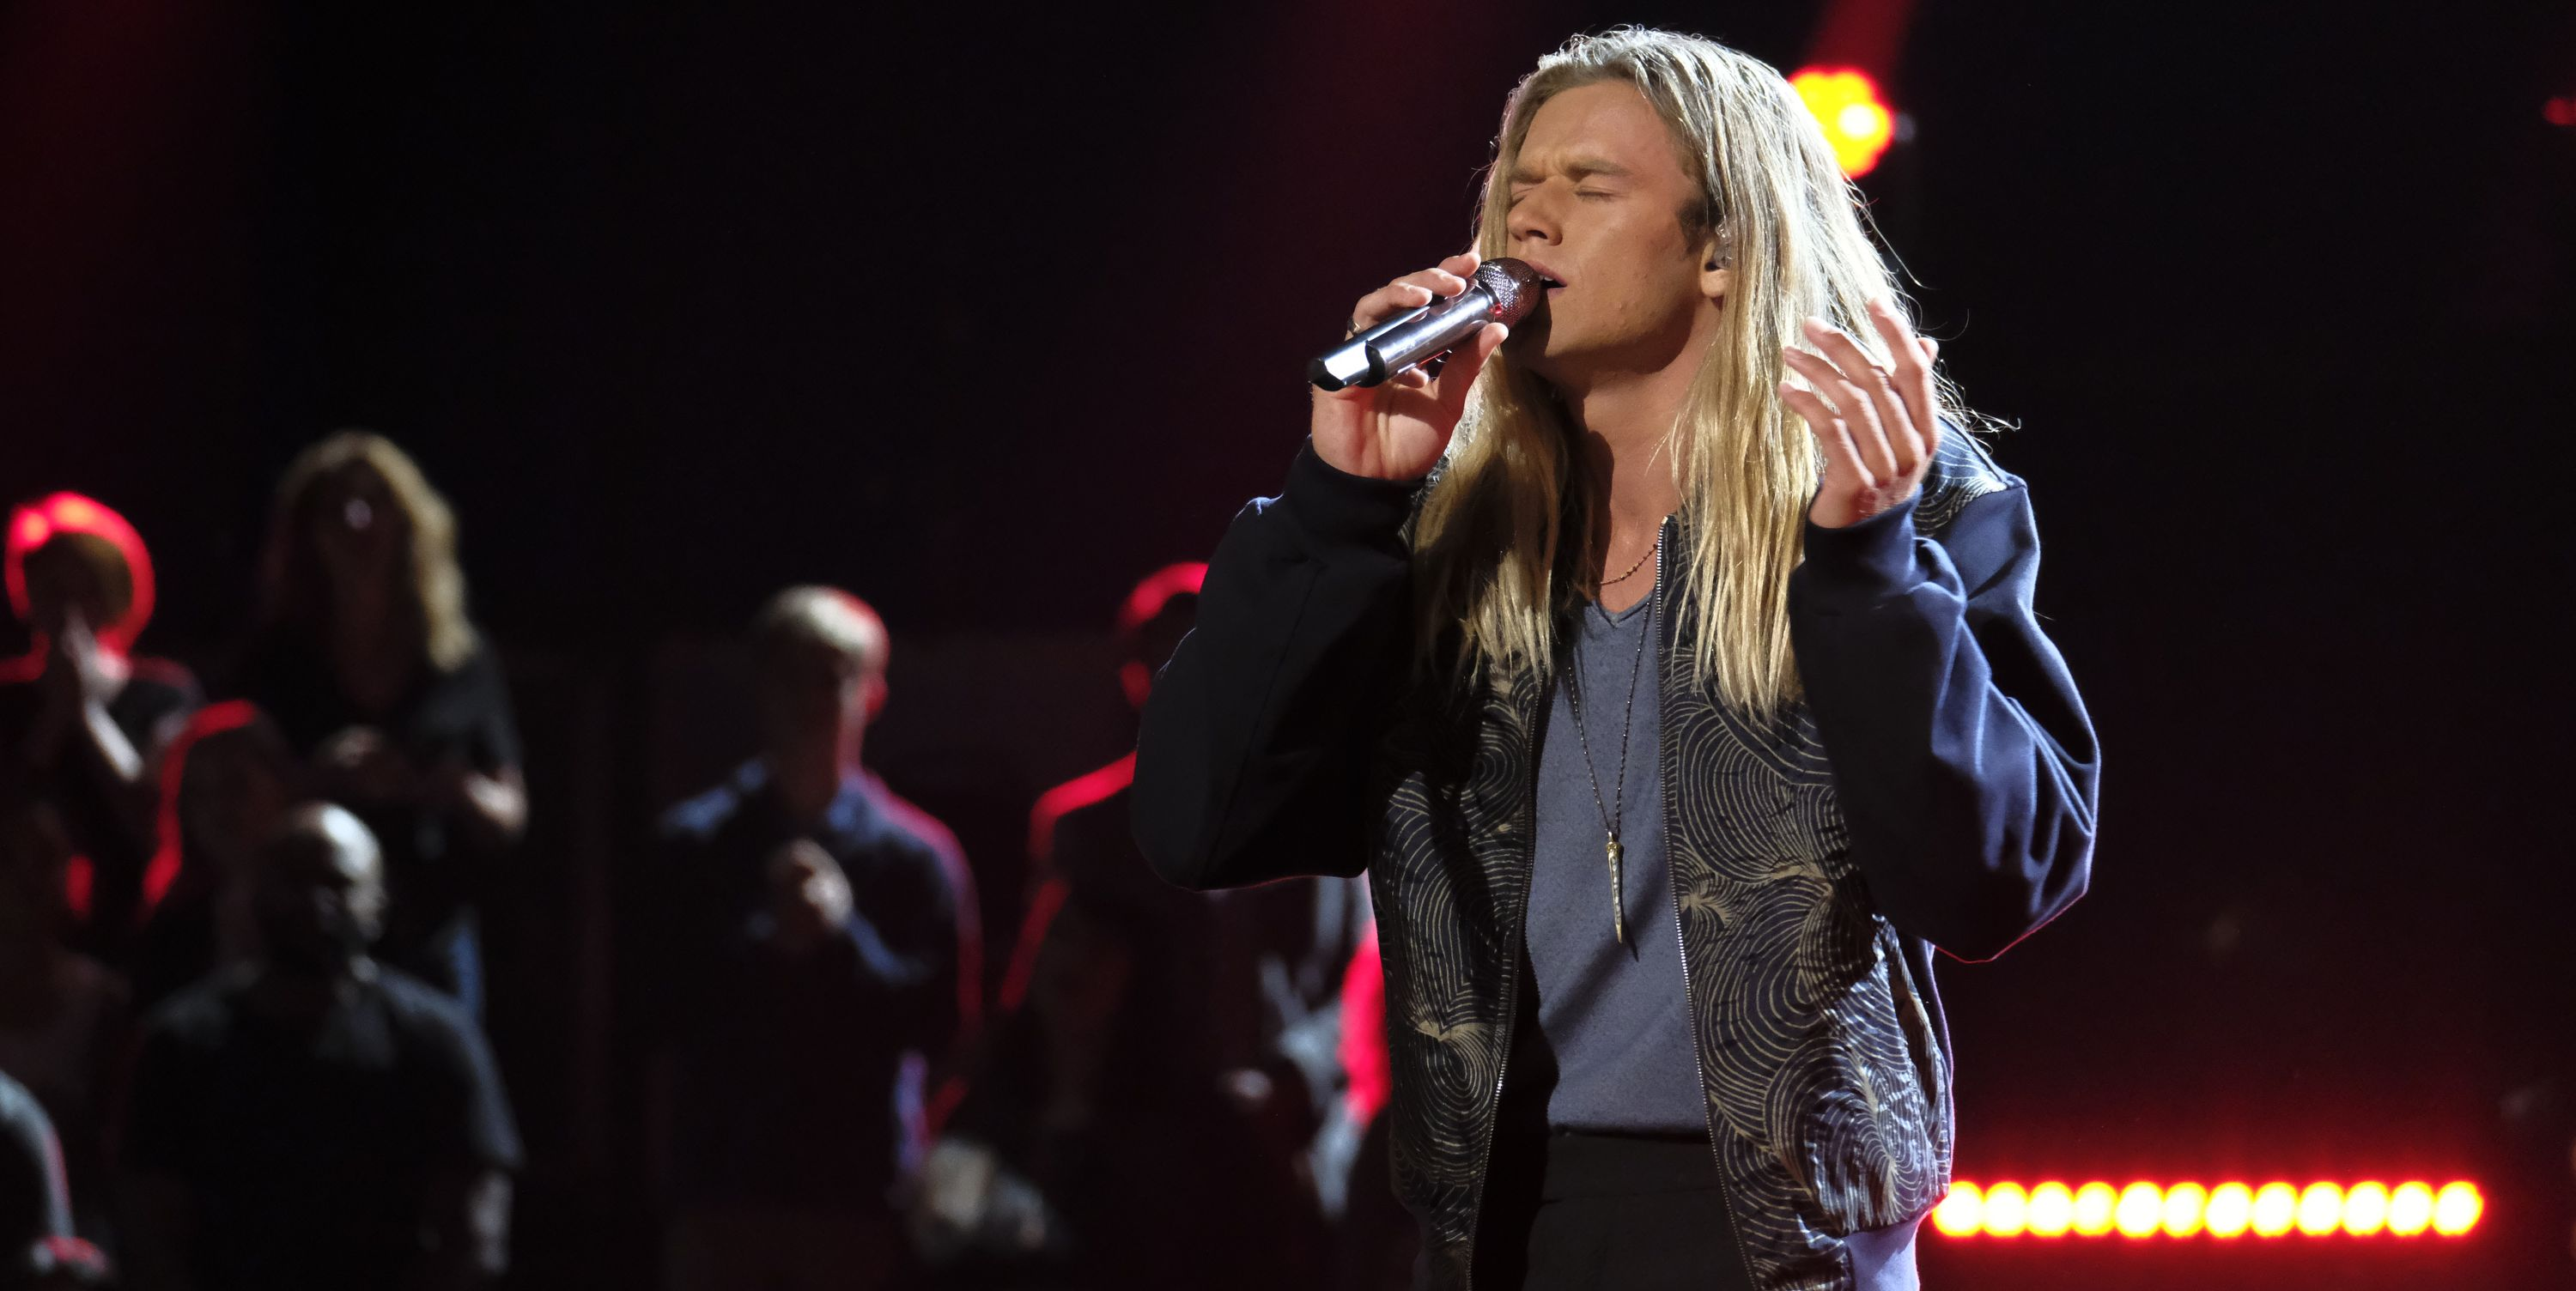 'The Voice' Fans Are Divided Over Frontrunner Tyke James's Intense Performance